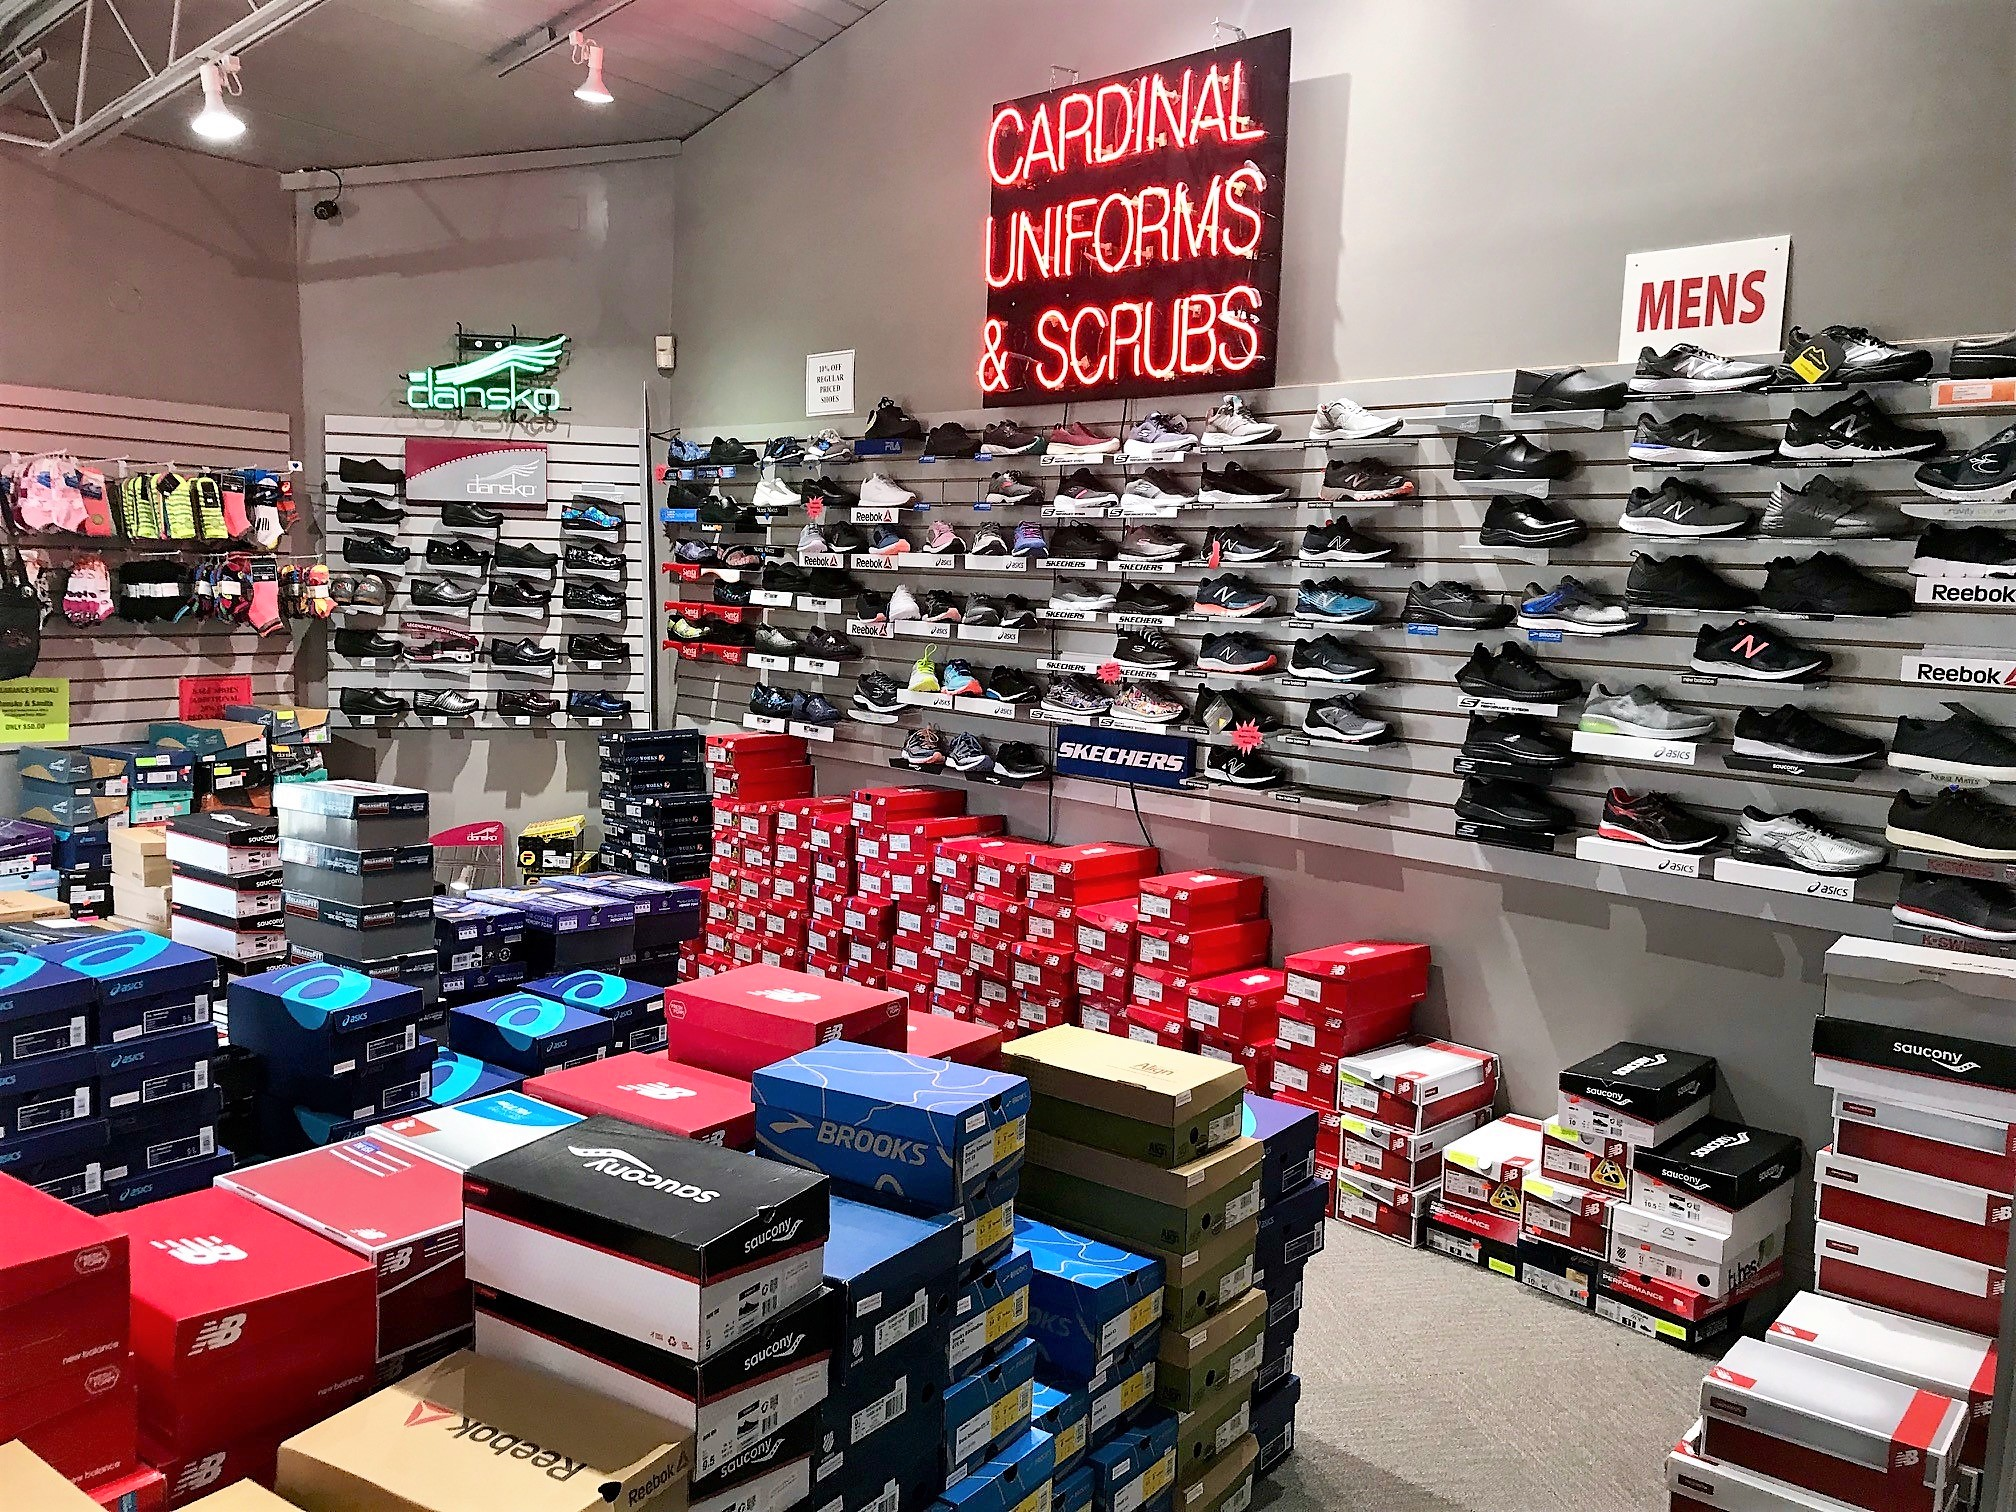 Dupont Circle Cardinal Uniforms & Scrubs Shoe Wall New Balance, Sketchers, Brooks, Asics, Dansko, Sanita, Reebok